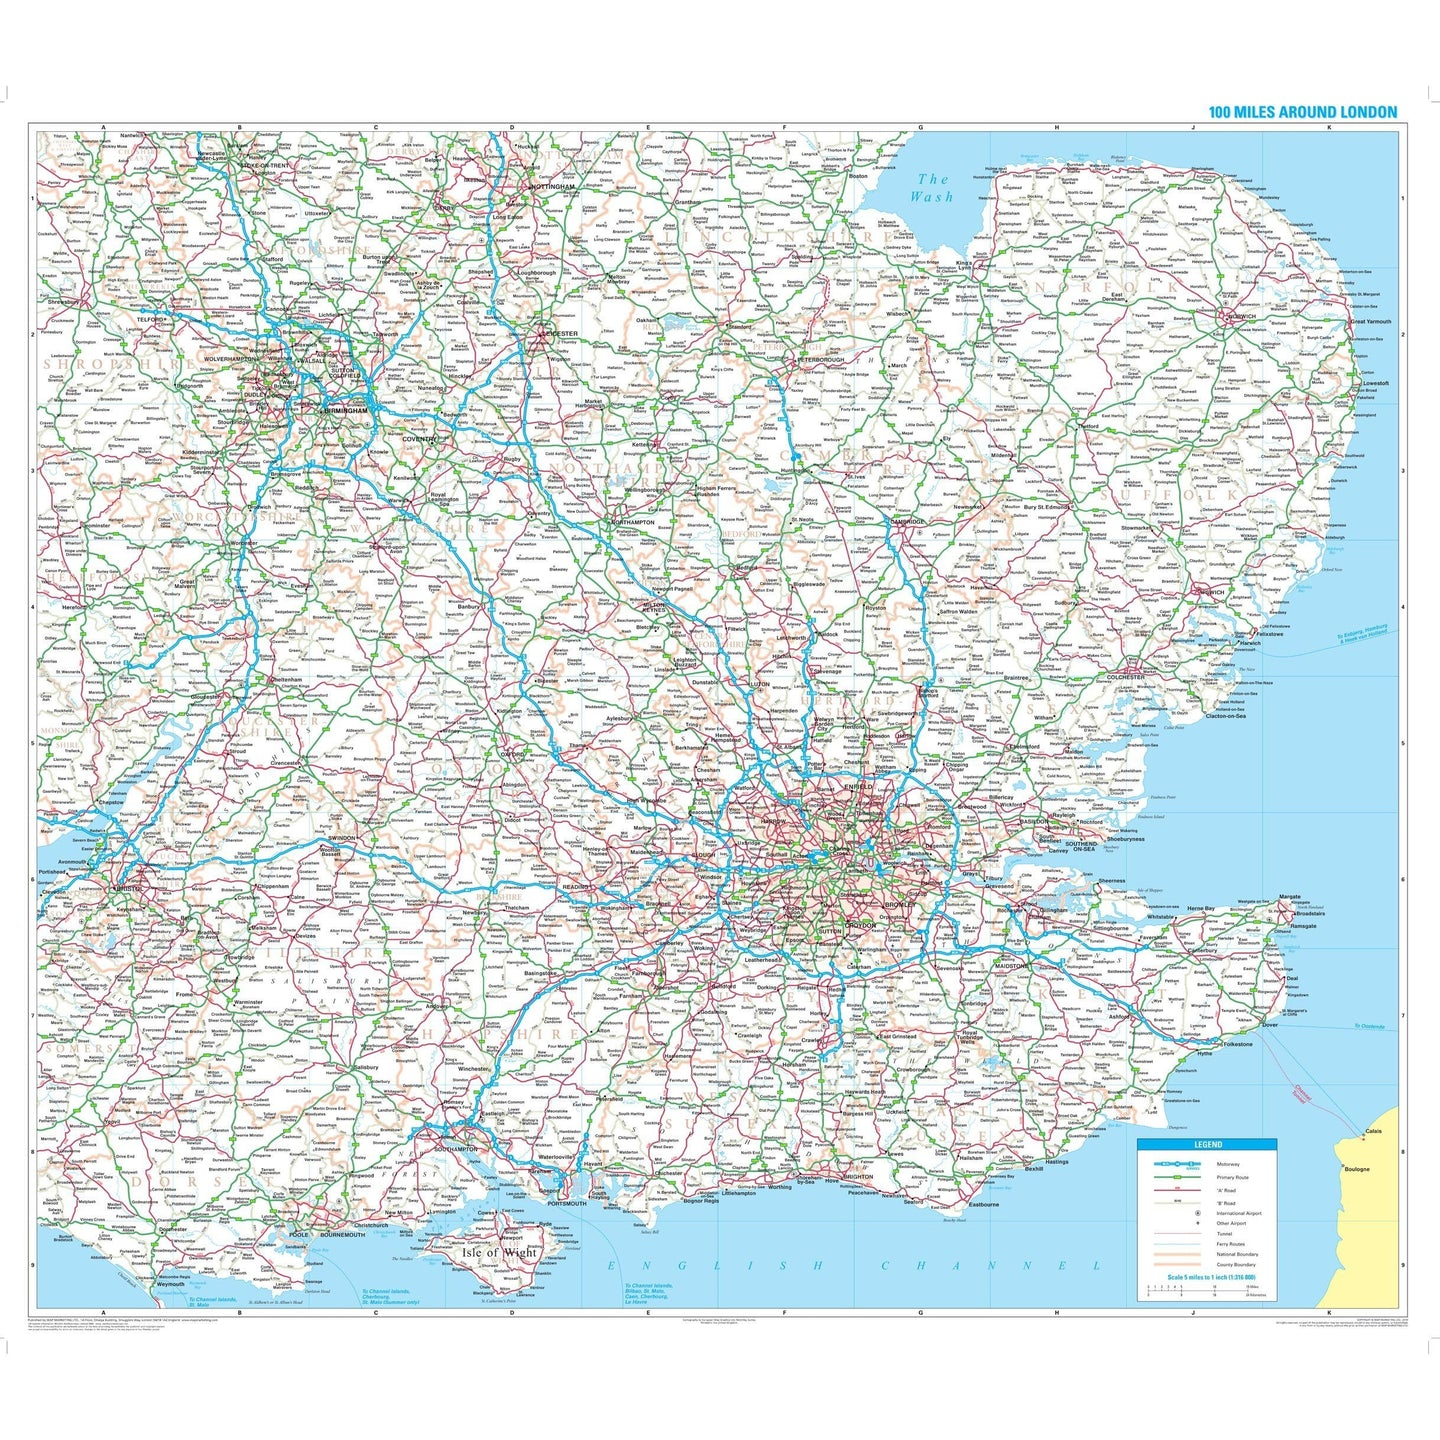 Where Is London Map.100 Miles Around London Write On Wipe Off Laminated Wall Map